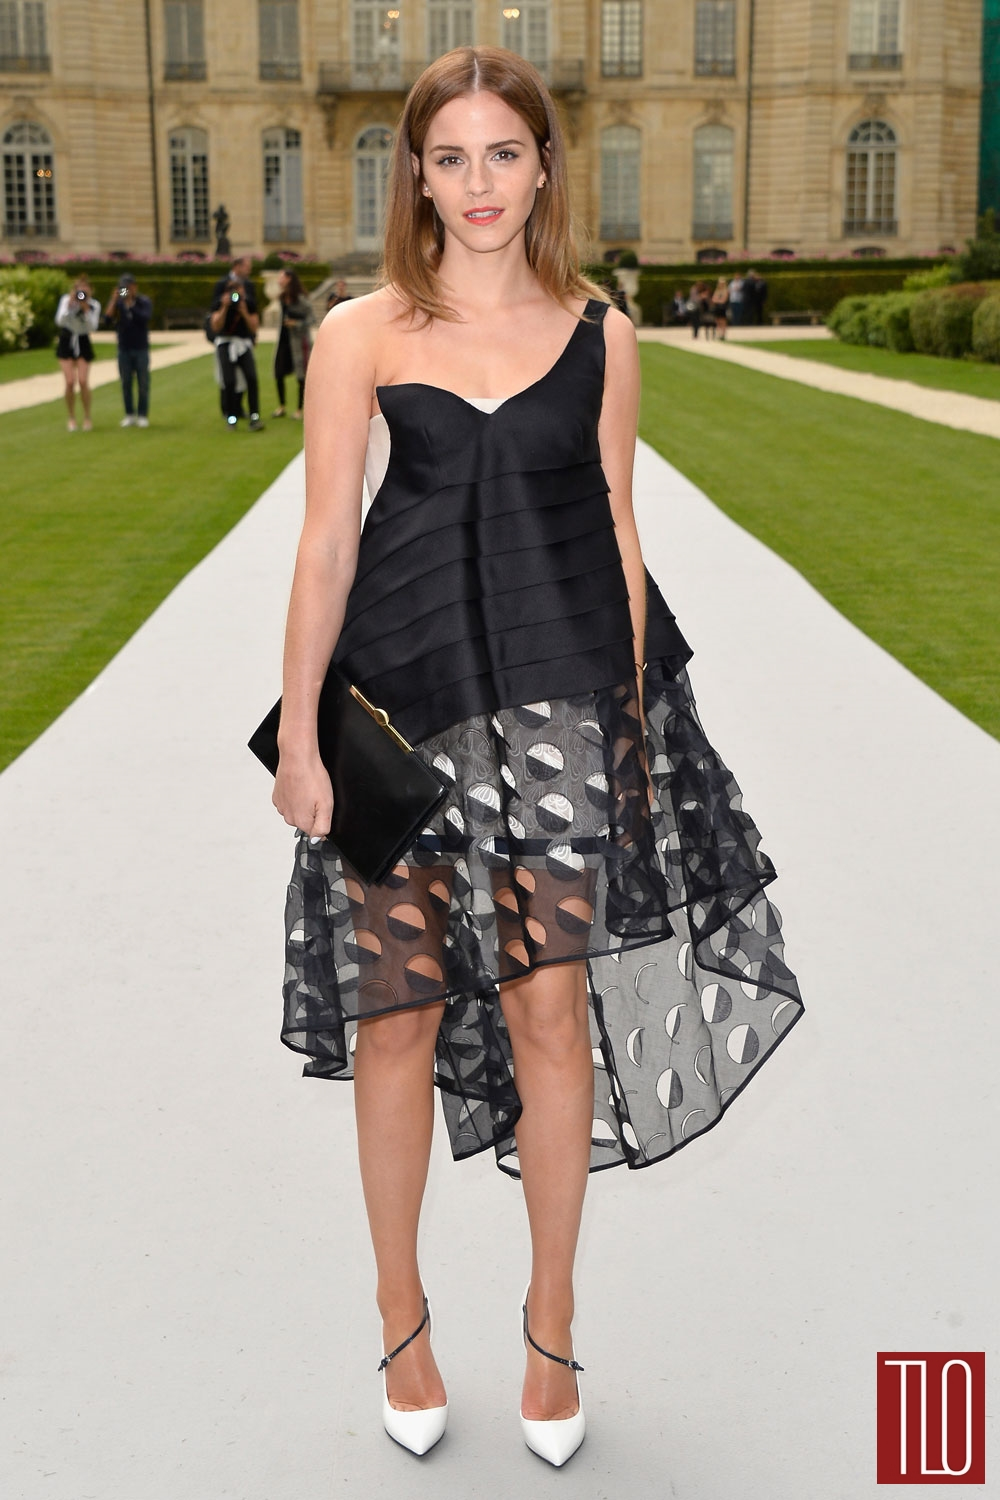 Emma-Watson-Christian-Dior-Fall-2014-Couture-Show-Paris-Tom-Lorenzo-Site-TLO (1)